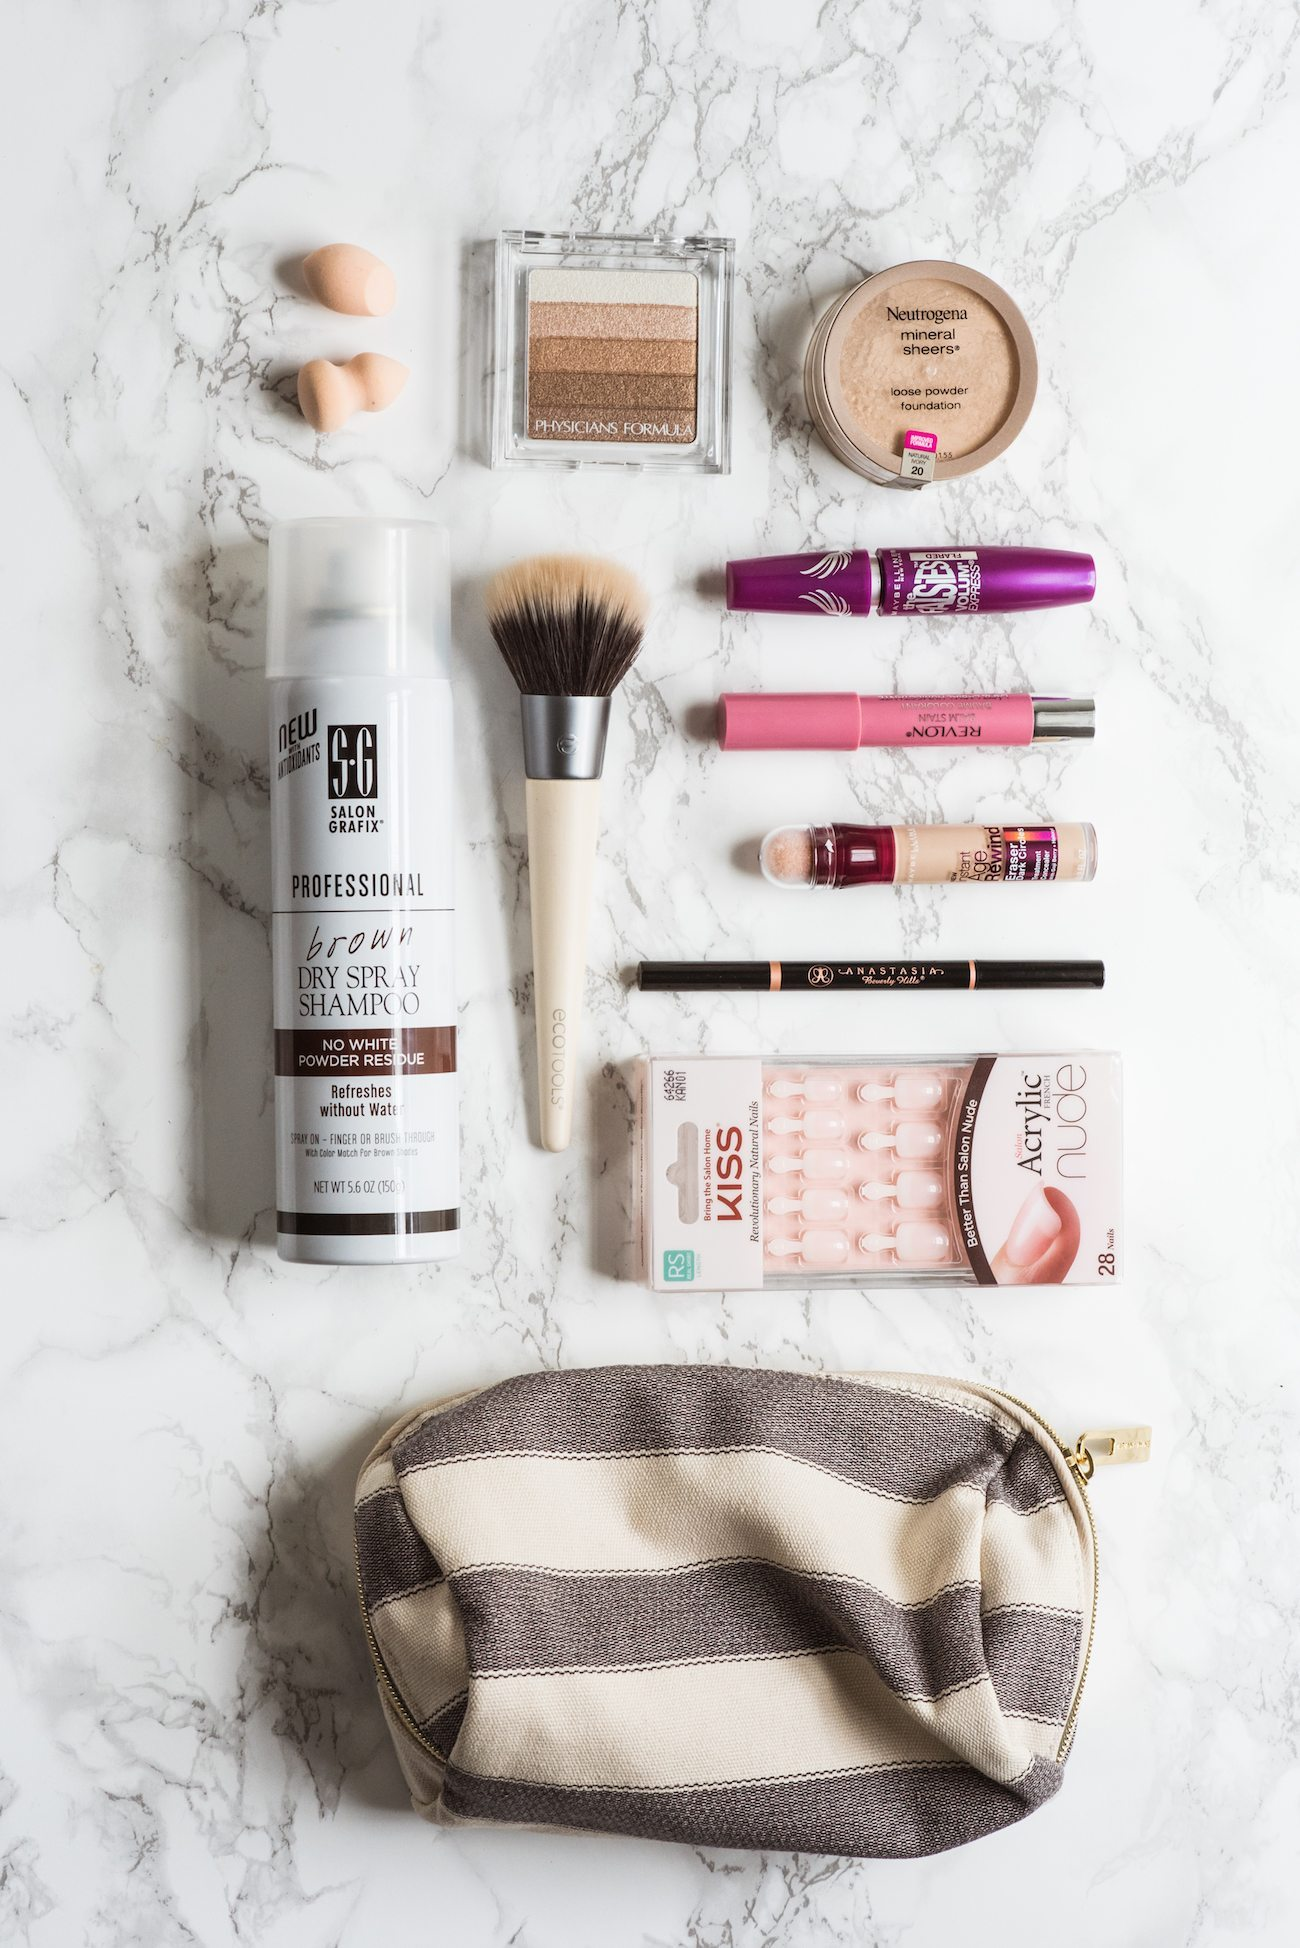 My 10 Favorite Everyday Beauty Products from @cydconverse